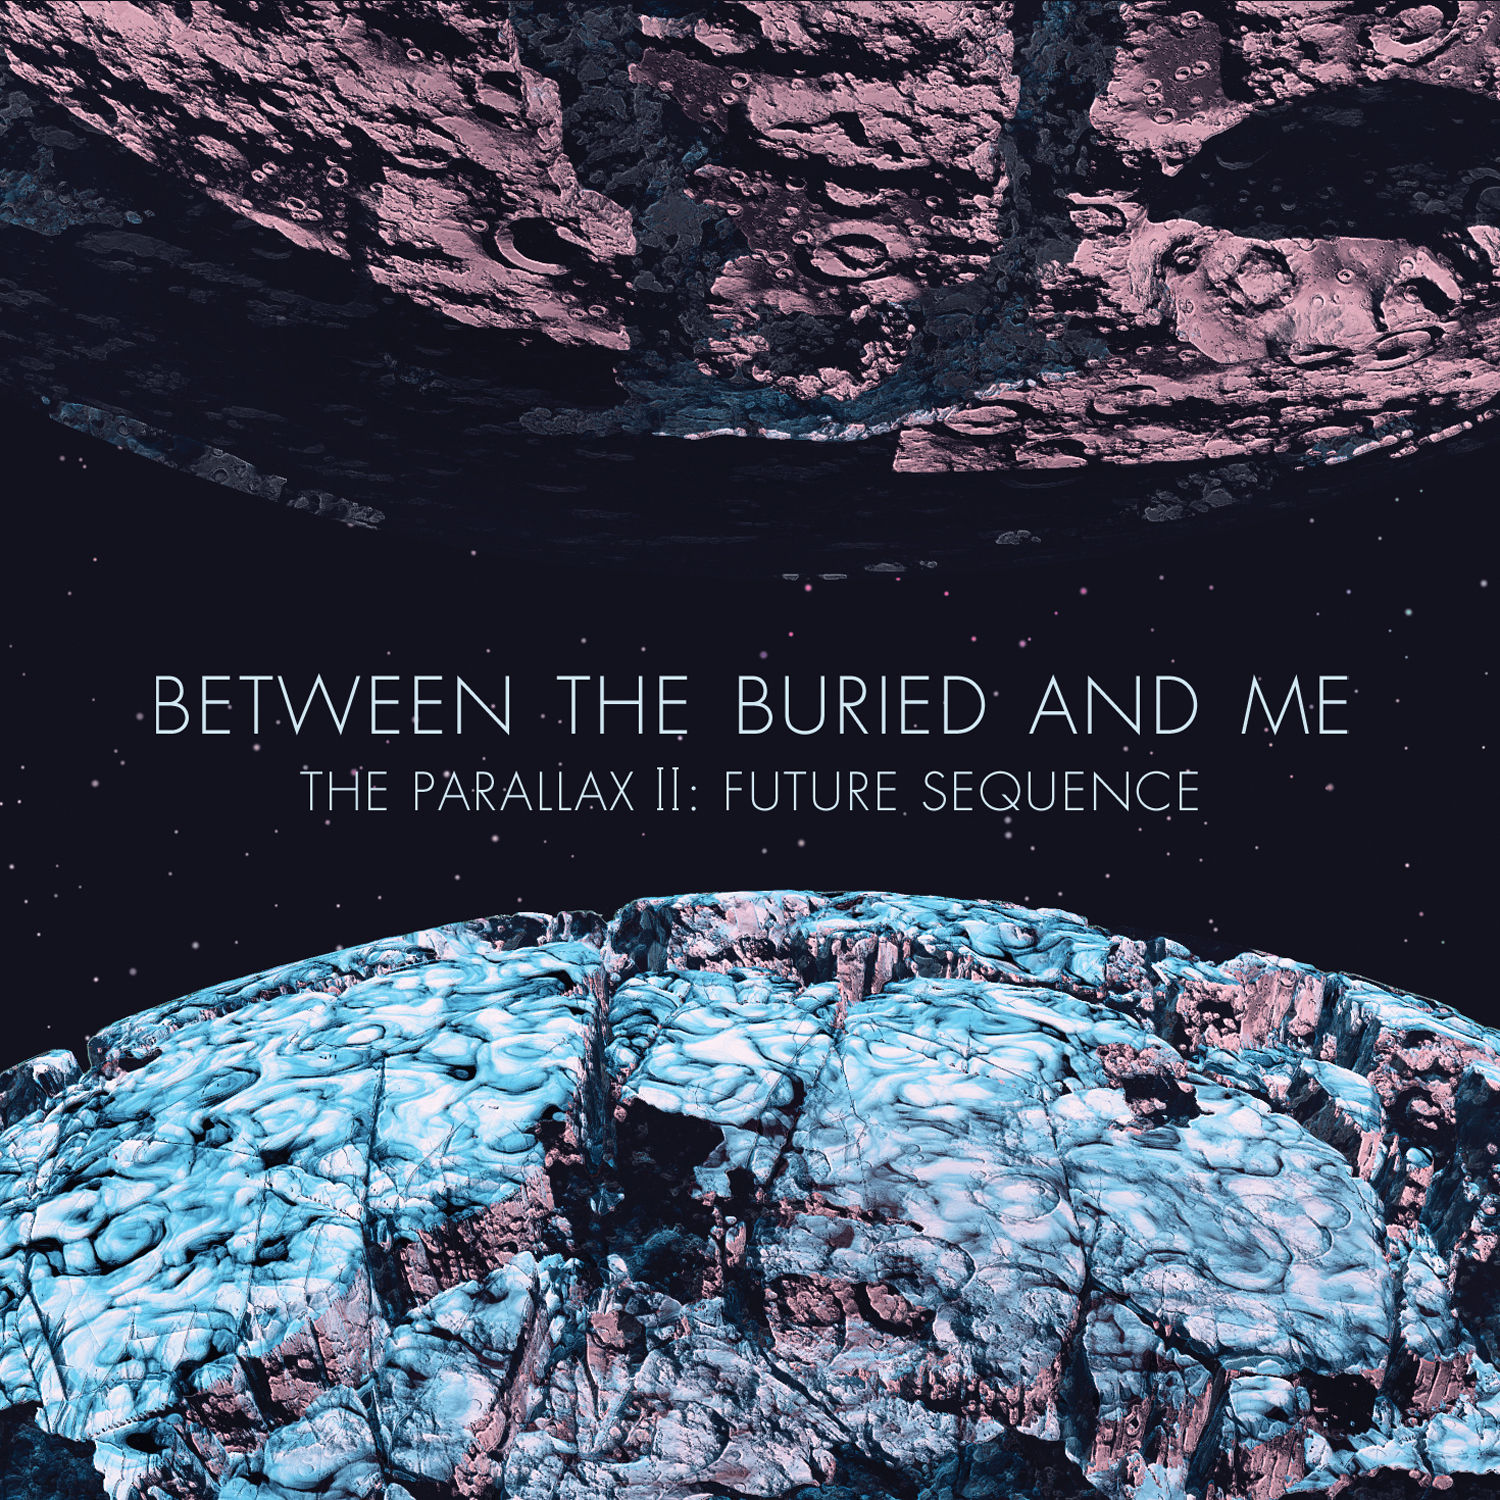 Between-the-Buried-and-Me-Parallax-II